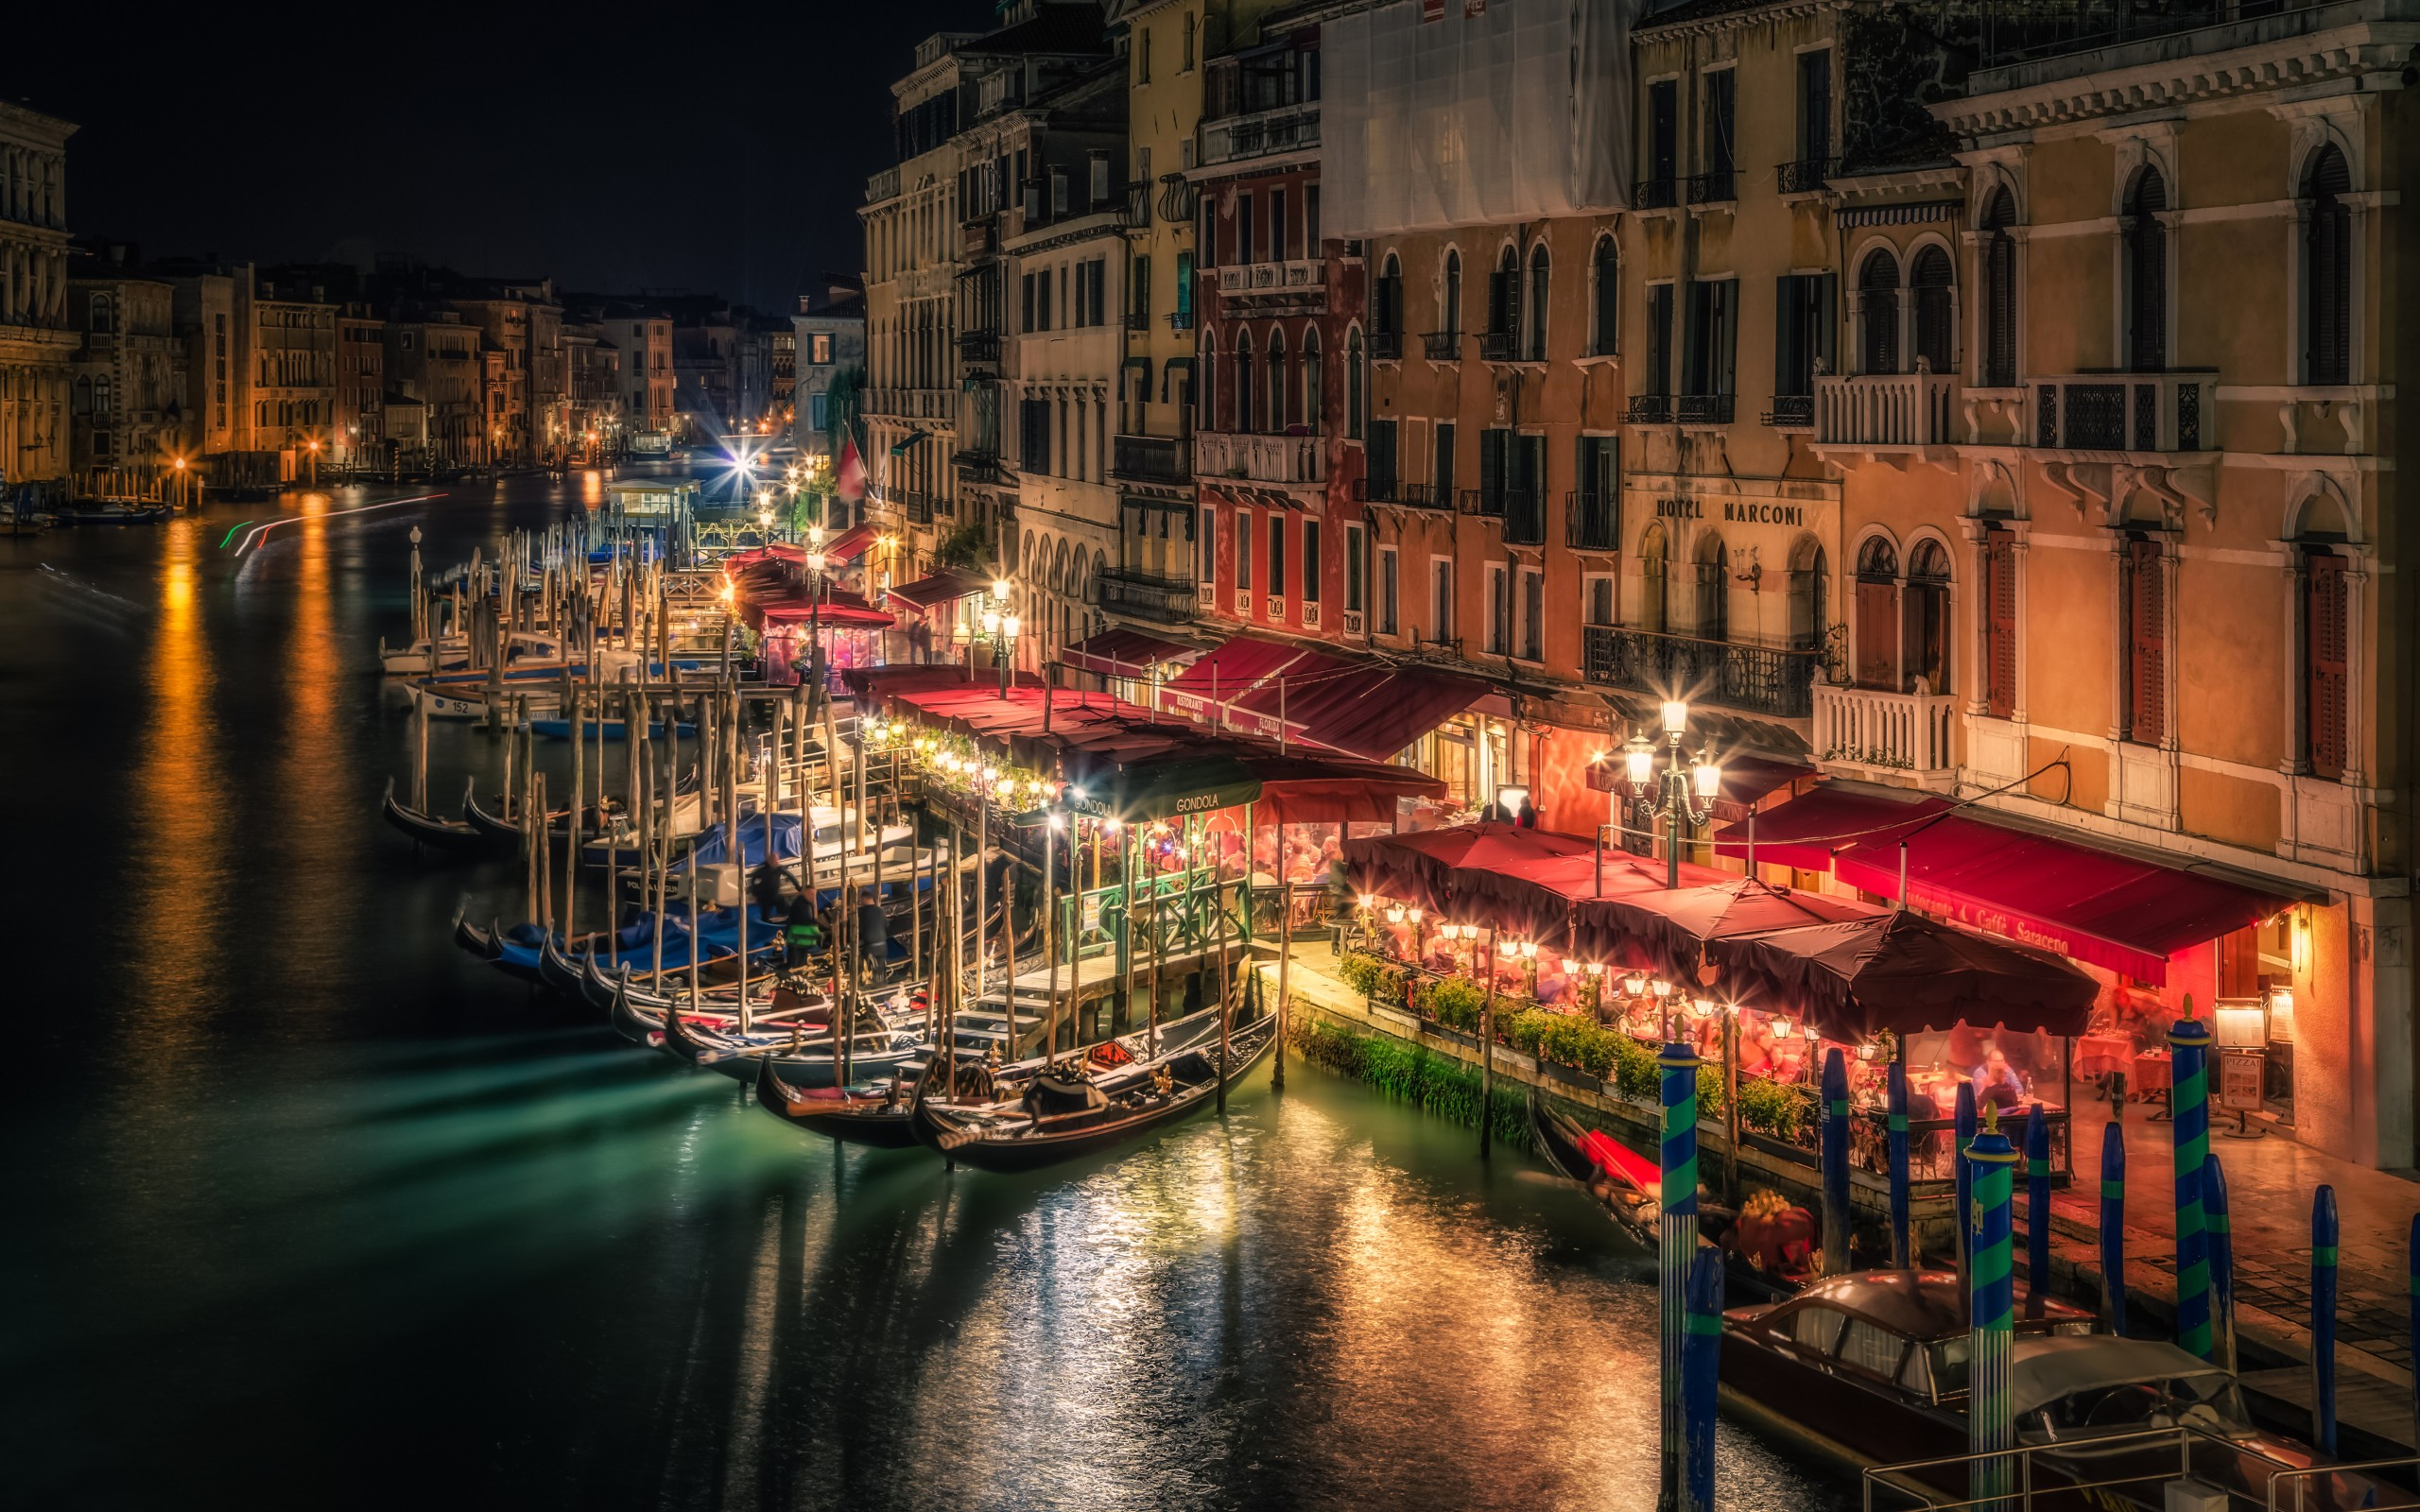 Grand Canal in Venice Italy at Night HD Wallpaper Background 2560x1600